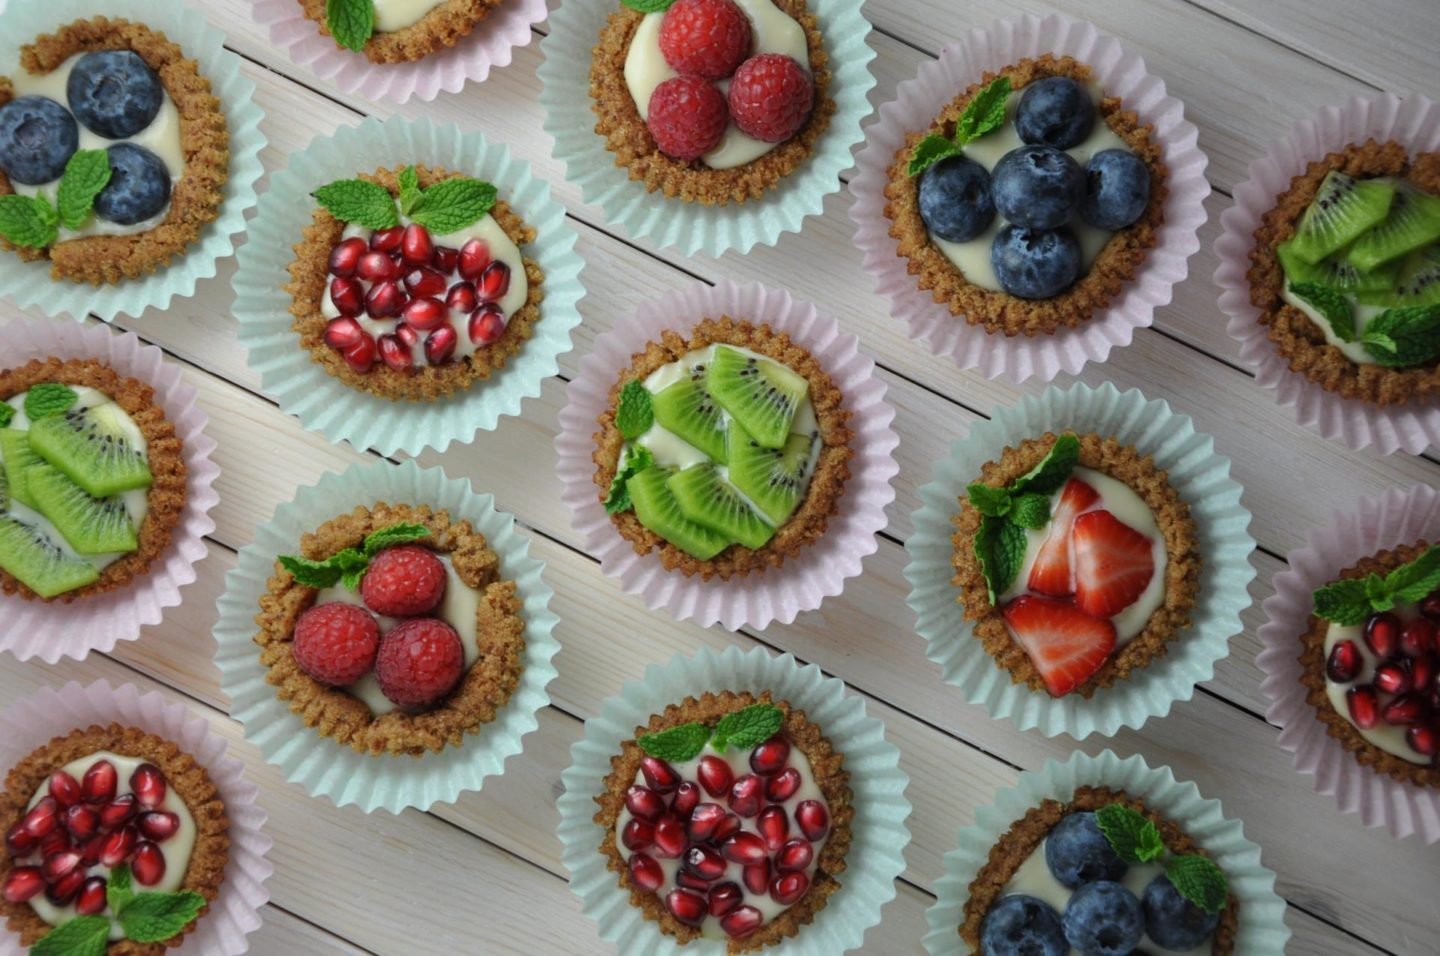 hi-res Fruit Tarts – Horizontal